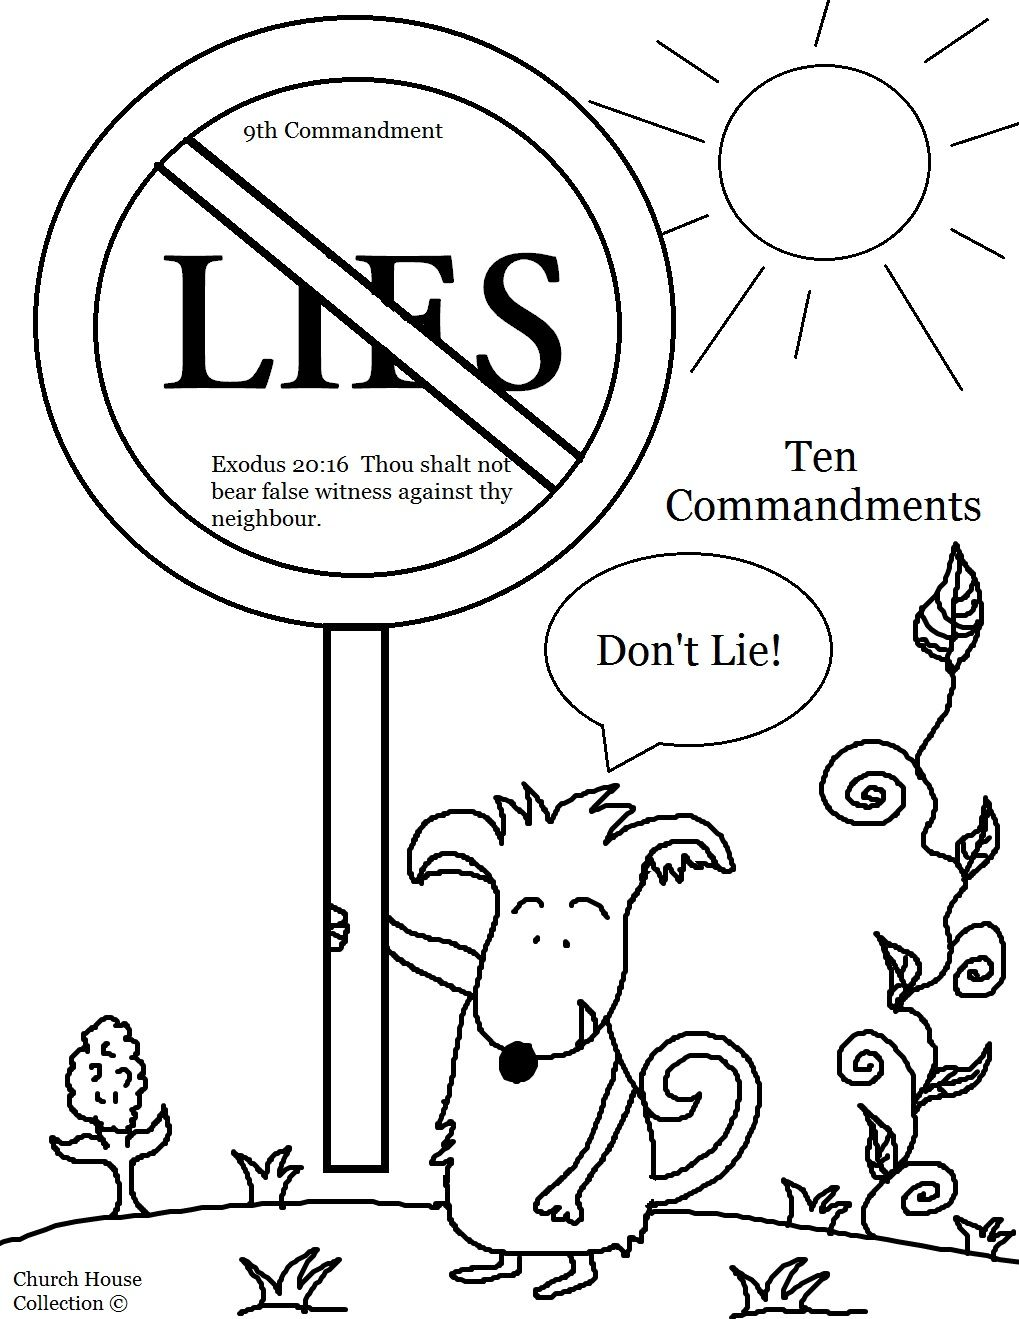 Coloring pages moses and ten commandments - Thou Shalt Not Bear False Witness Against Thy Neighbor Lie Coloring Page For Kids